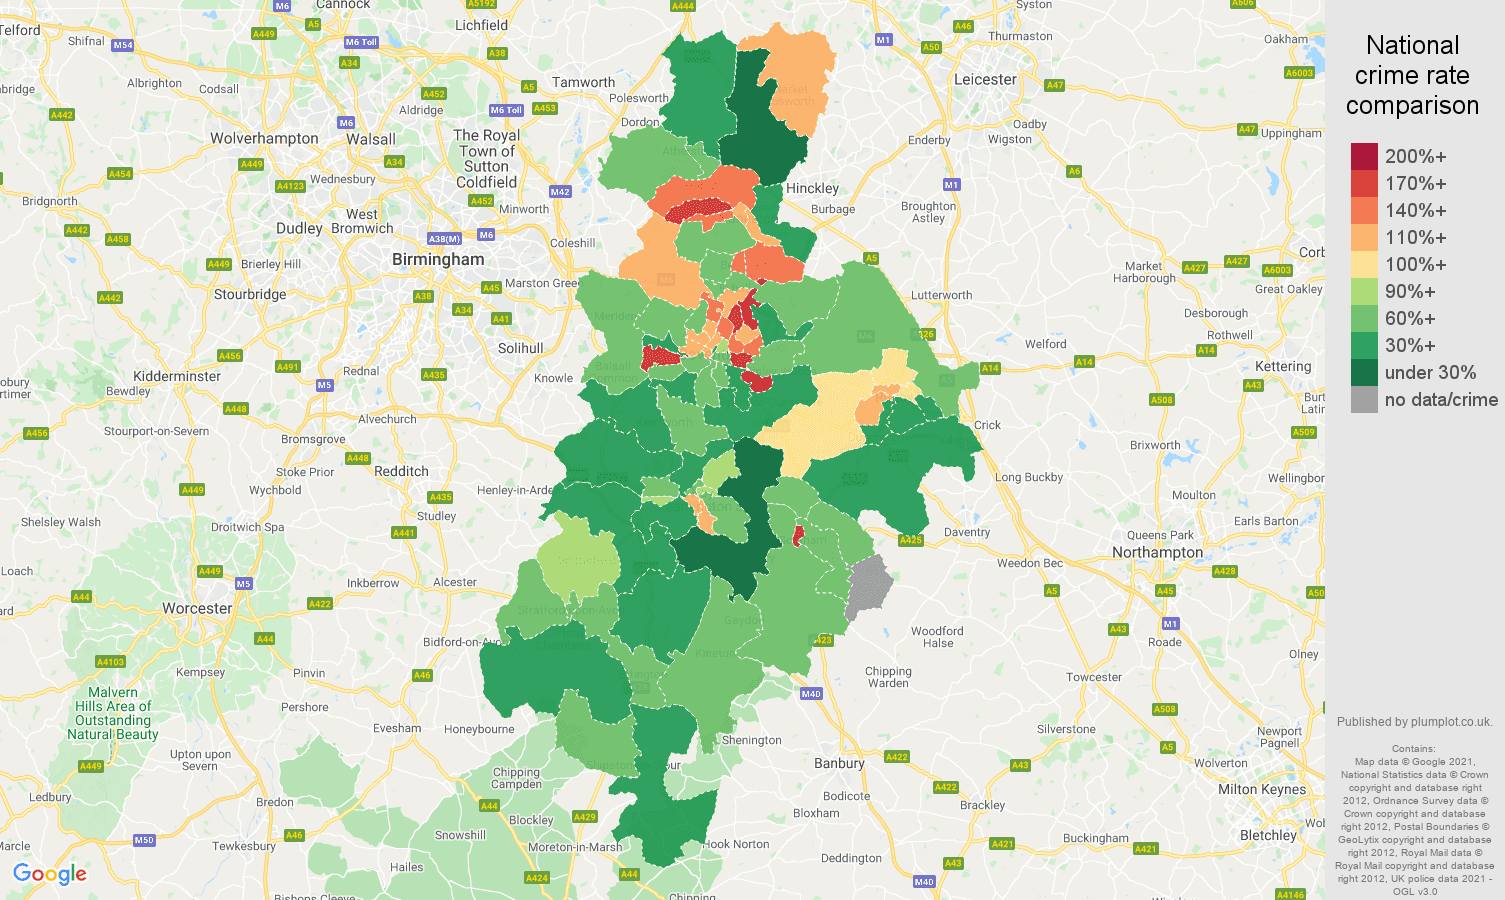 Coventry criminal damage and arson crime rate comparison map